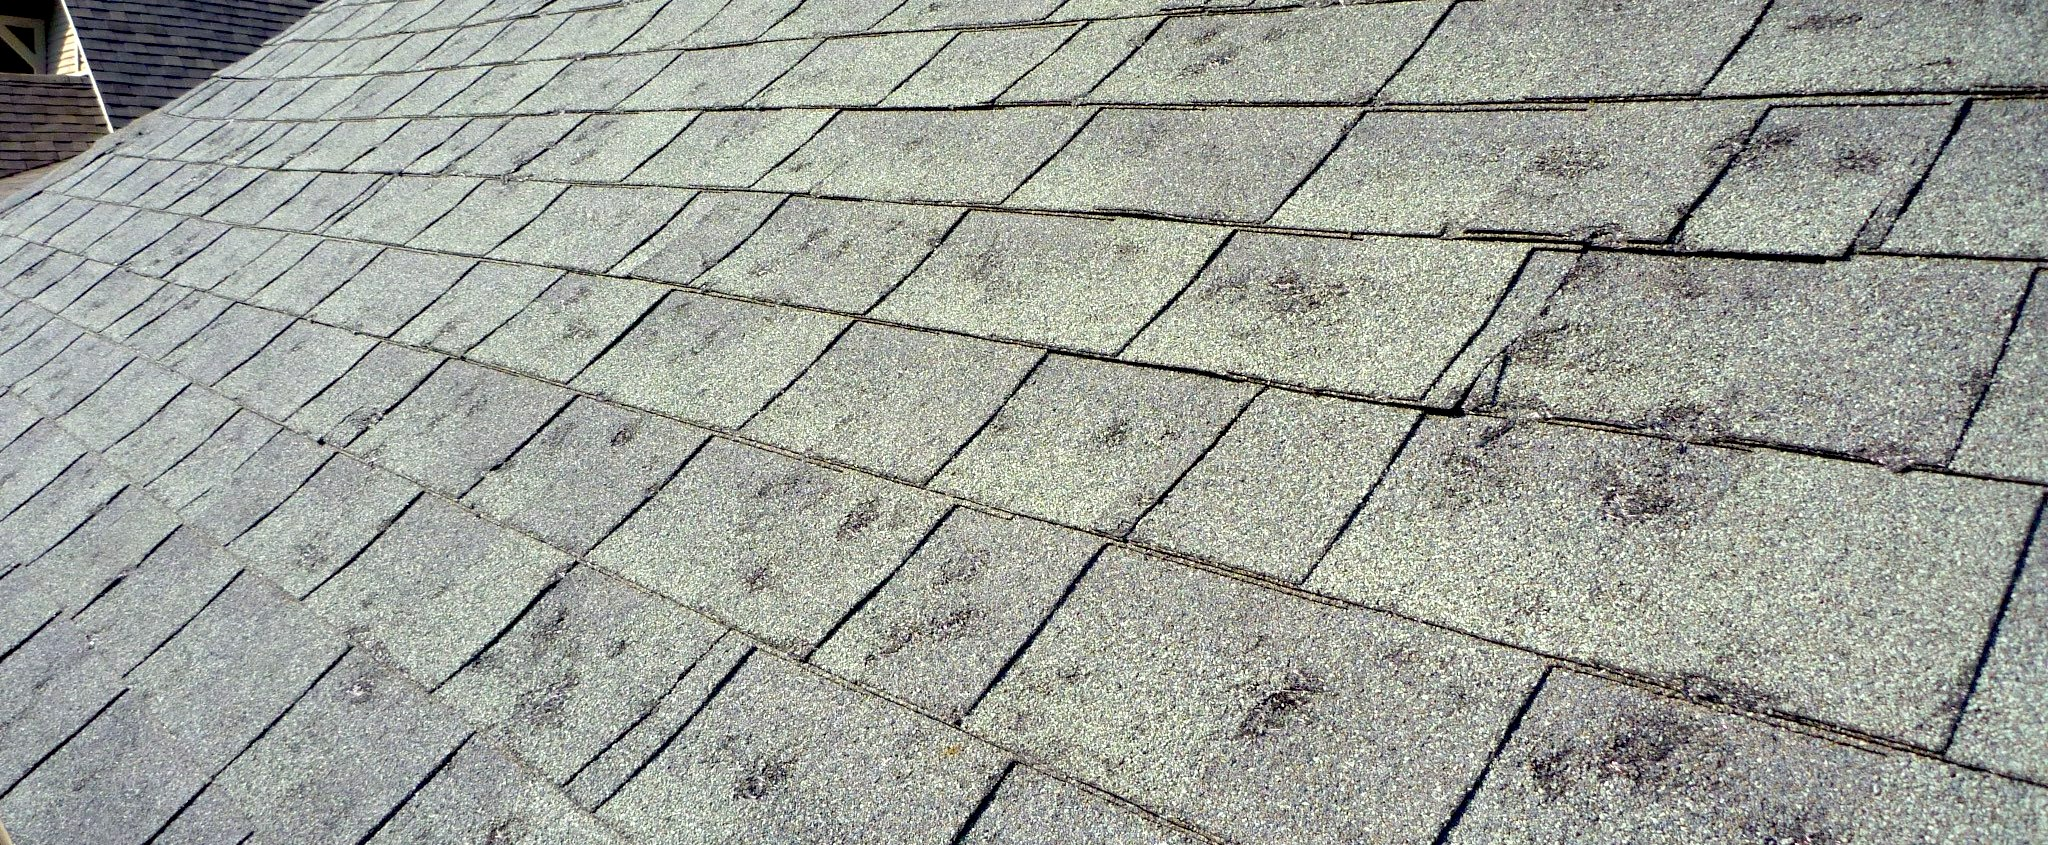 Asphalt Shingles damaged in Independence MO hail storm